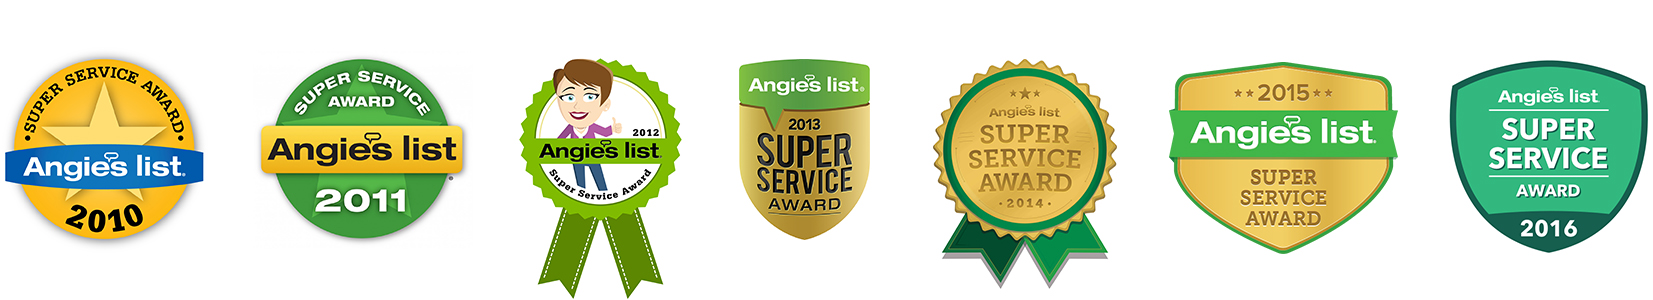 Angie's List Super Service Awards 2010, 2011, 2012, 2013, 2014, 2015, 2016 | All Pro Electric Portland, OR